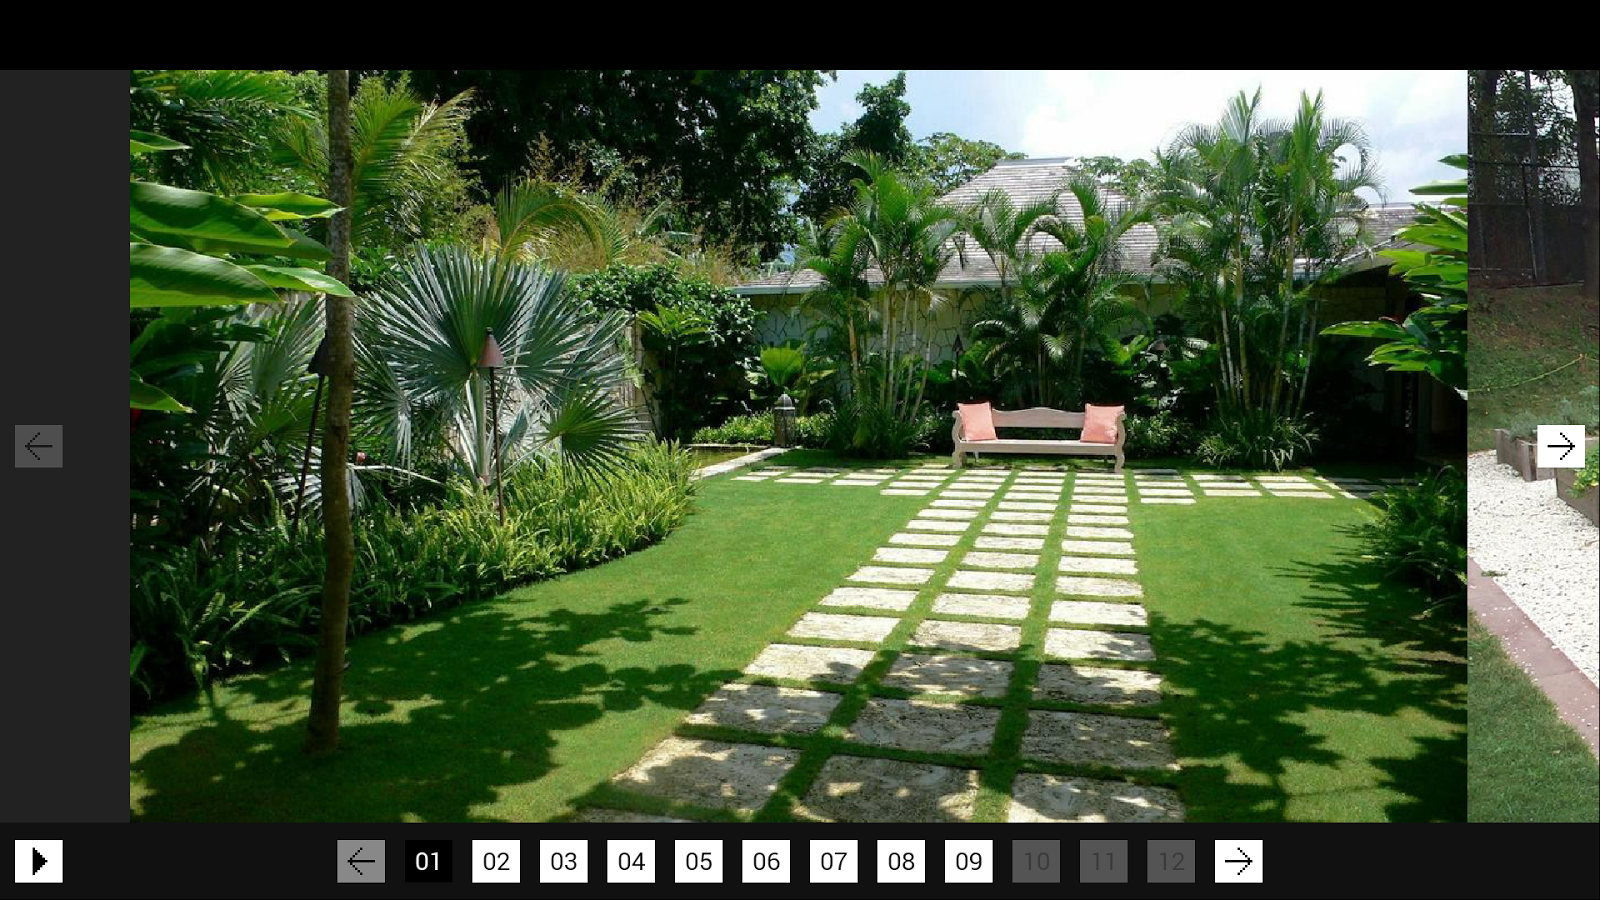 Garden Decor Android Apps on Google Play